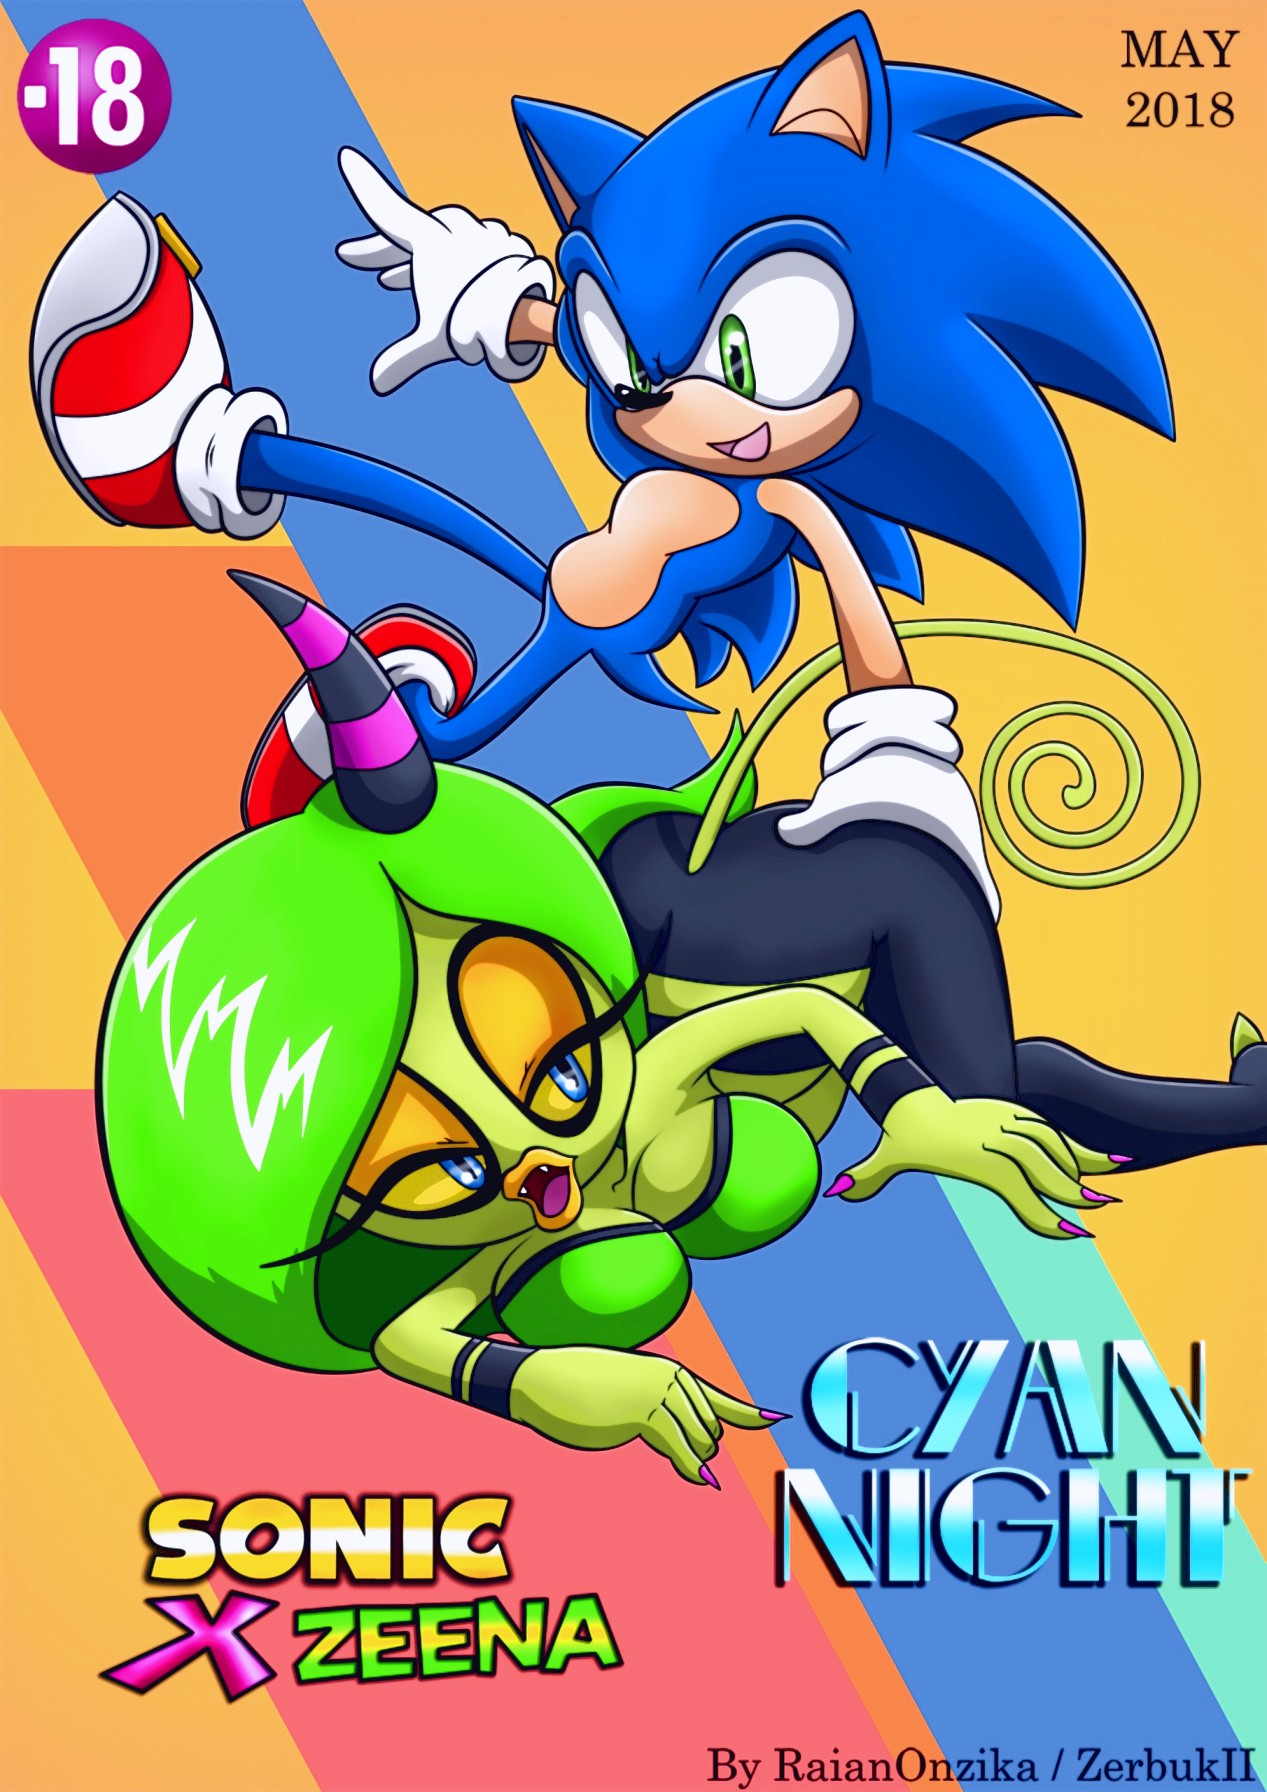 Cyan Night porn comic page 01 on category Sonic The Hedgehog